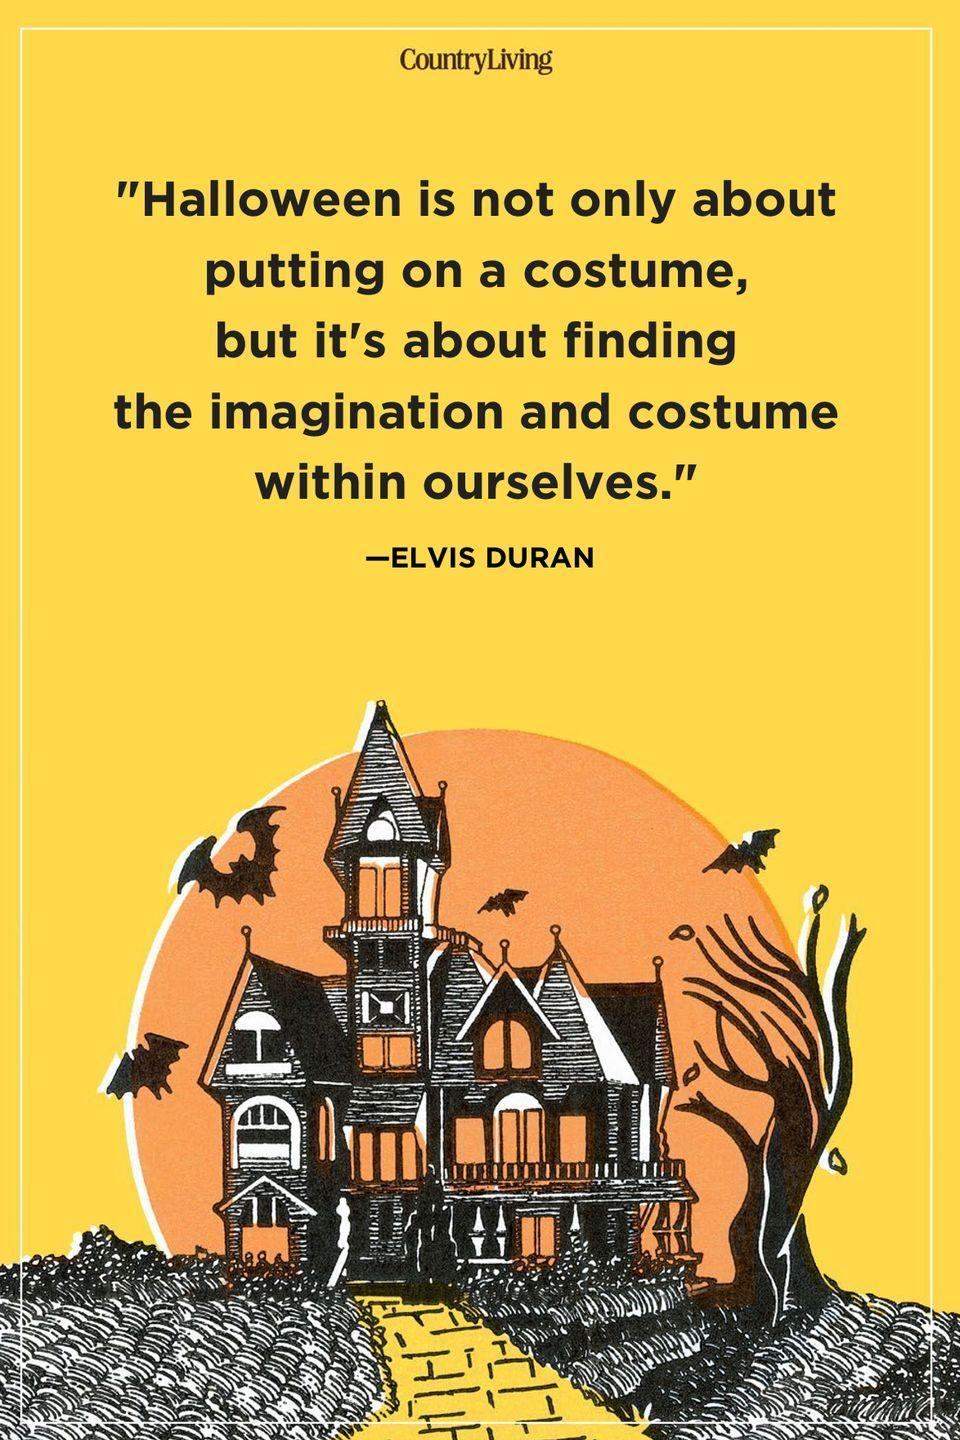 """<p>""""Halloween is not only about putting on a costume, but it's about finding the imagination and costume within ourselves.""""</p>"""